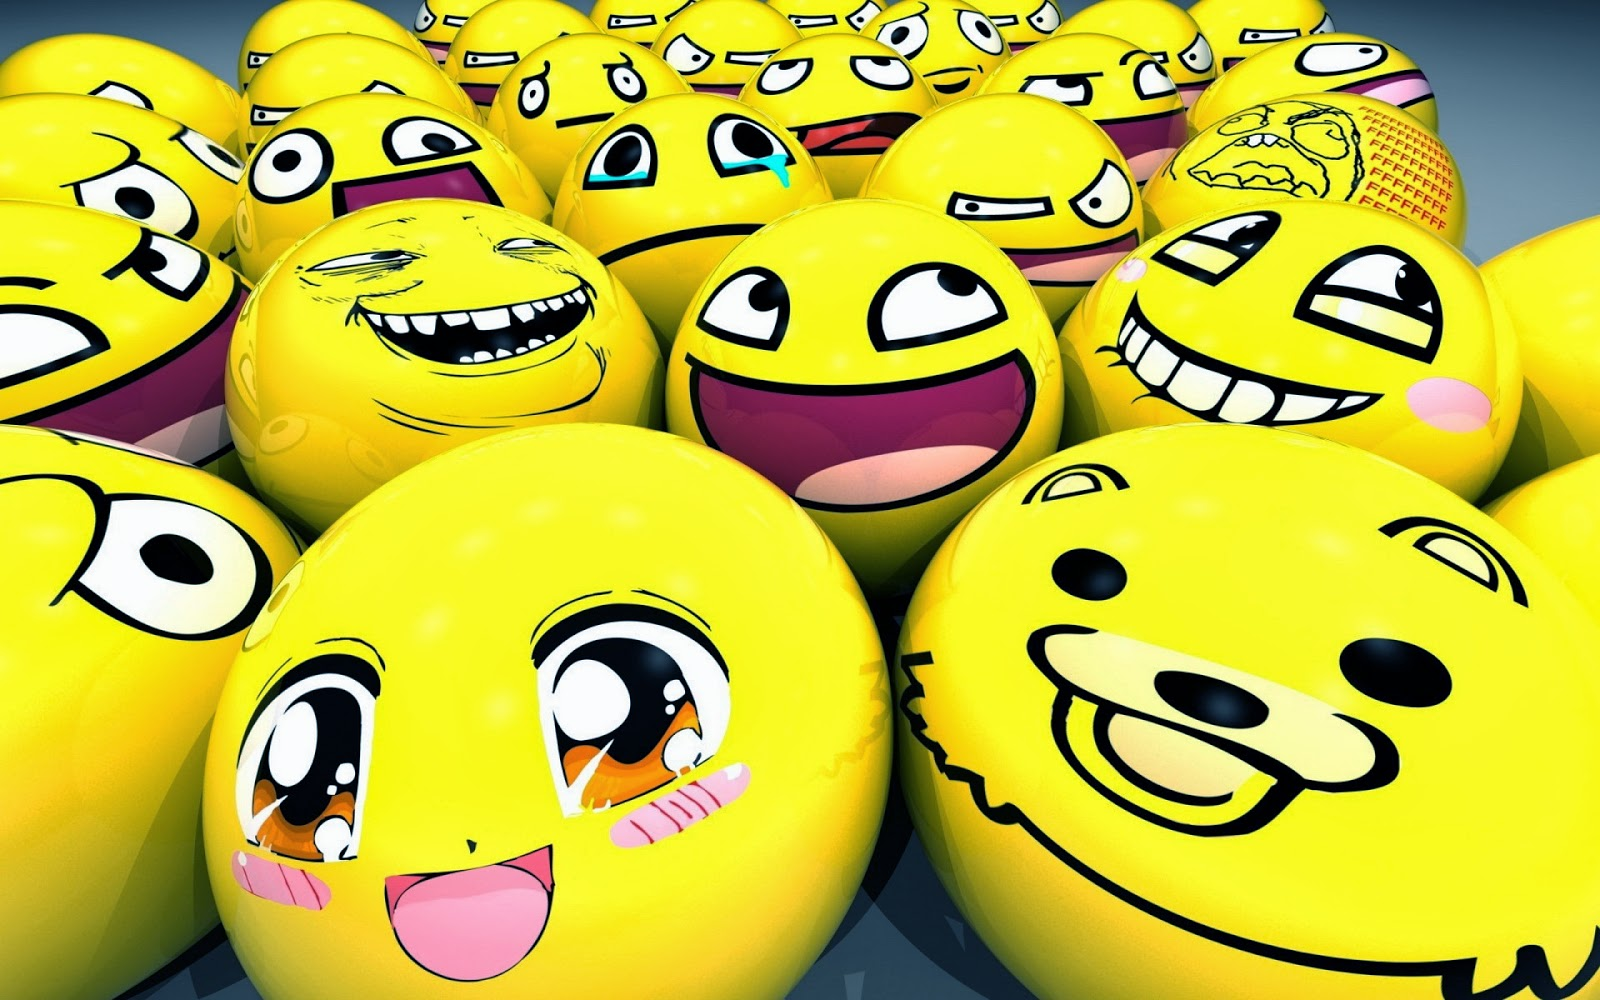 many-smiley-faces-with-different-expressions.jpg